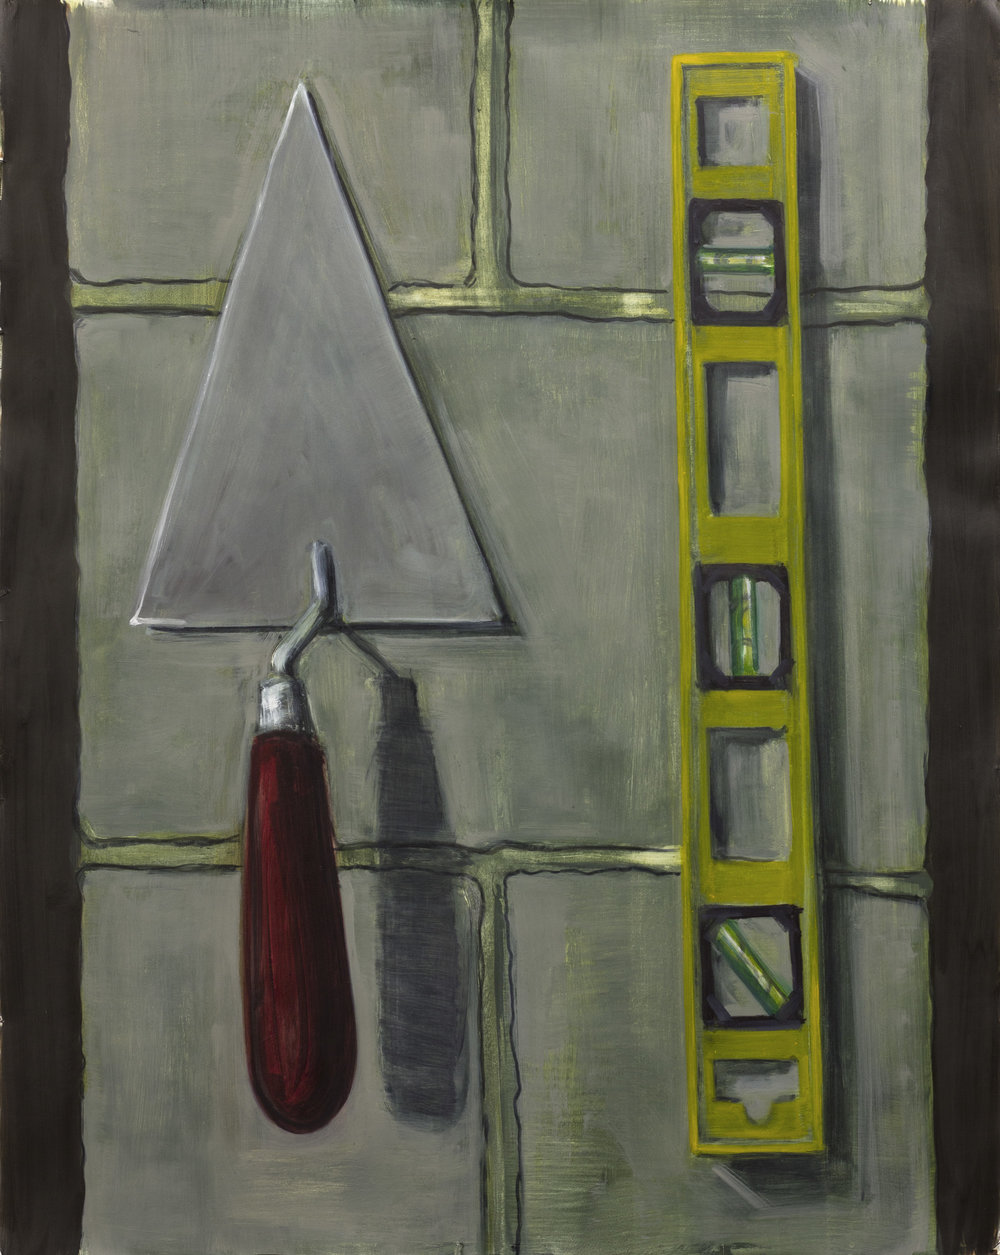 Trowel and Level.jpg